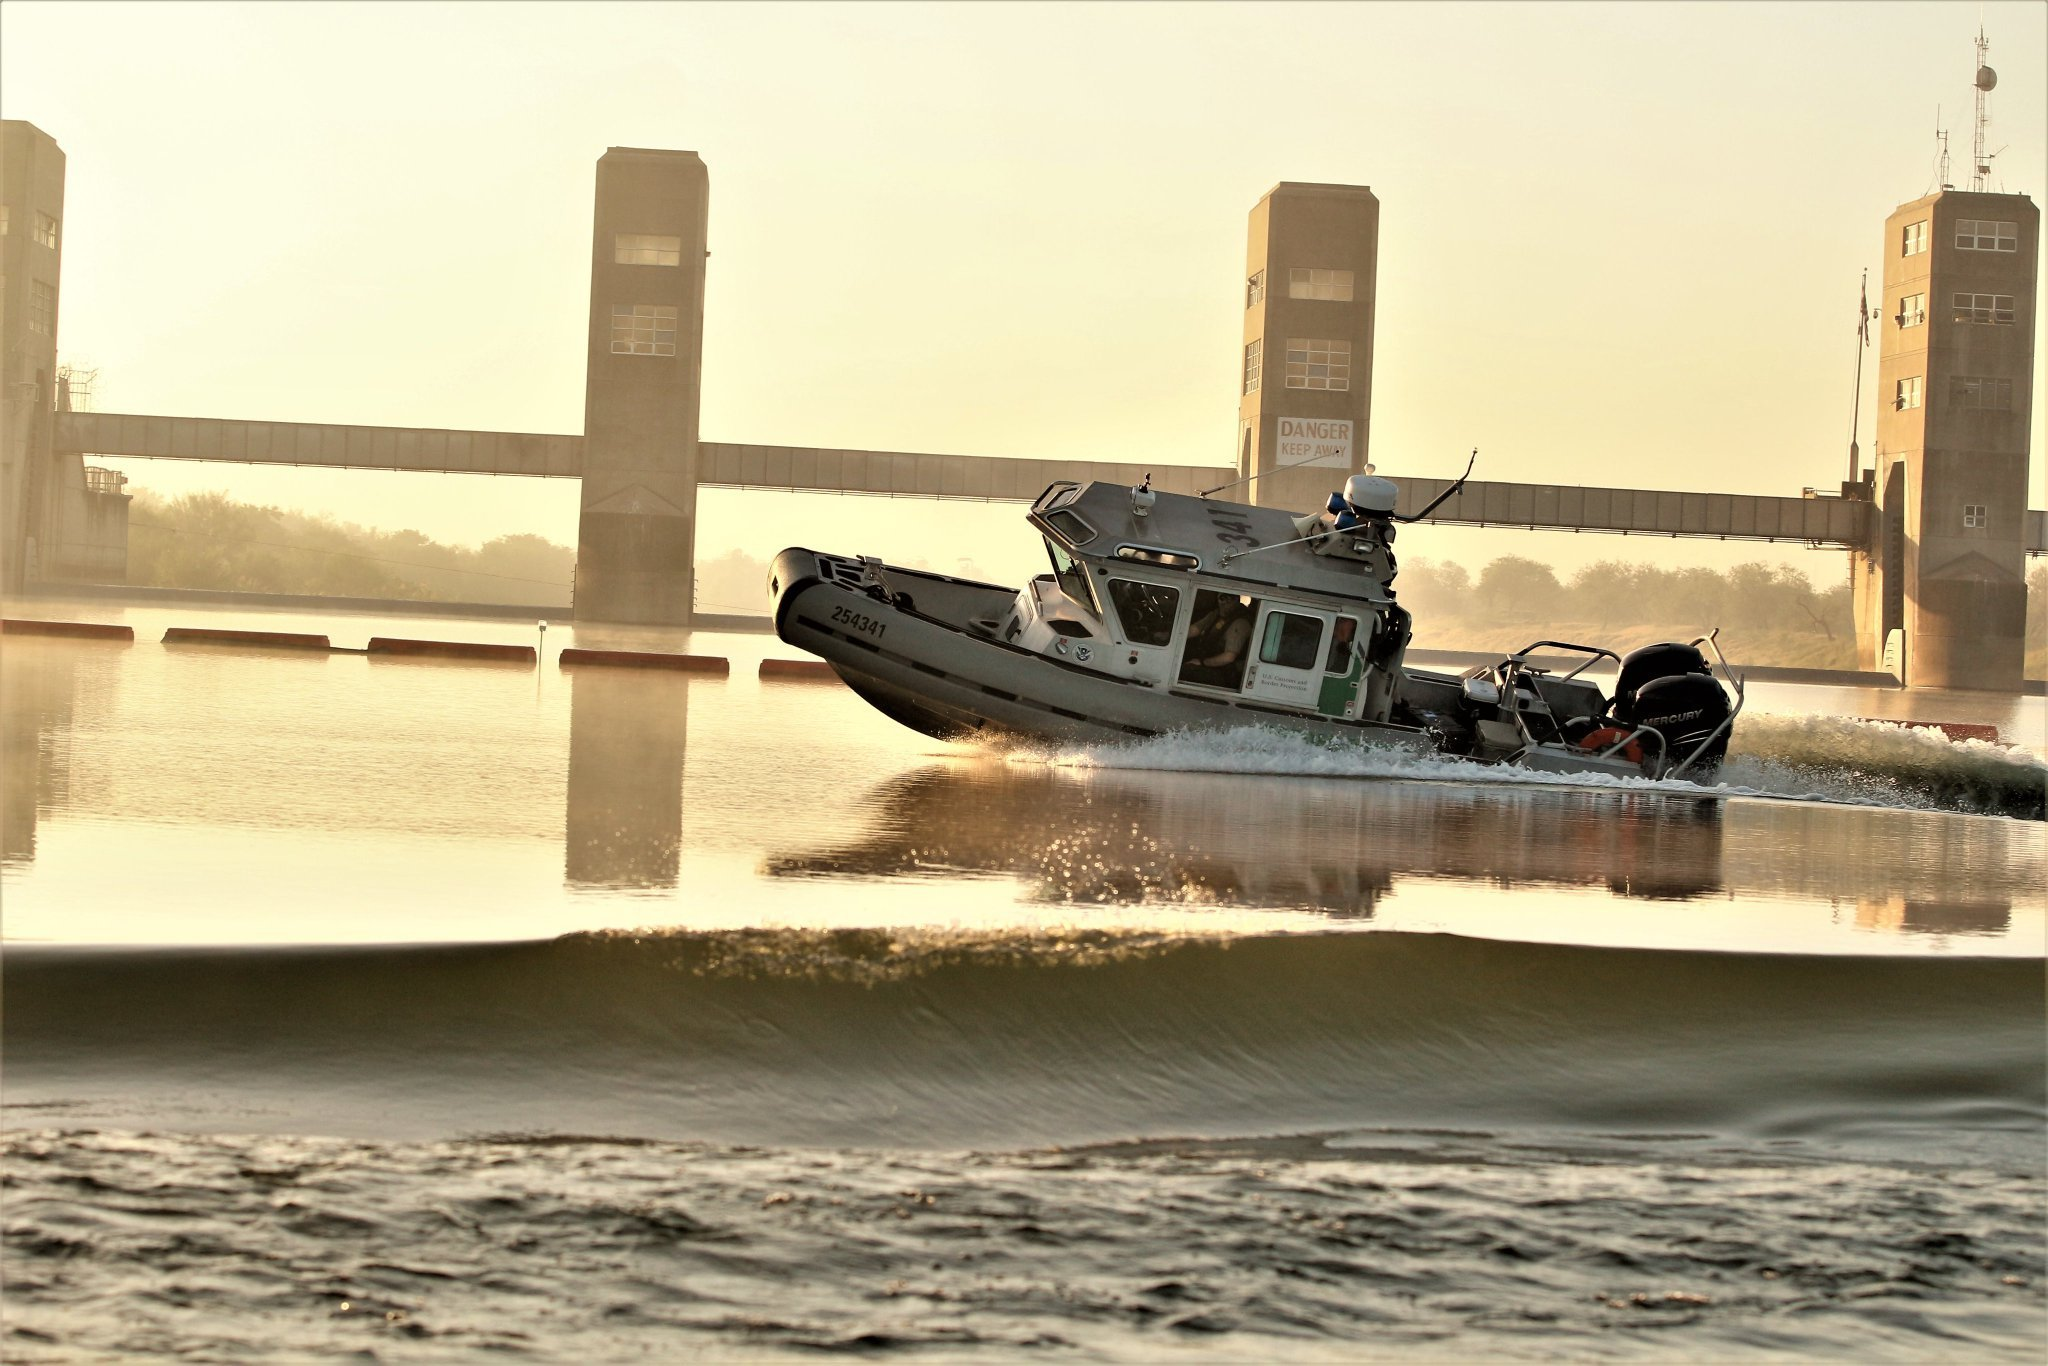 U.S. Customs and Border Protection officials in the Rio Grande Valley tweeted this photo of a Border Patrol boat that was fired upon on Aug. 9, 2019.